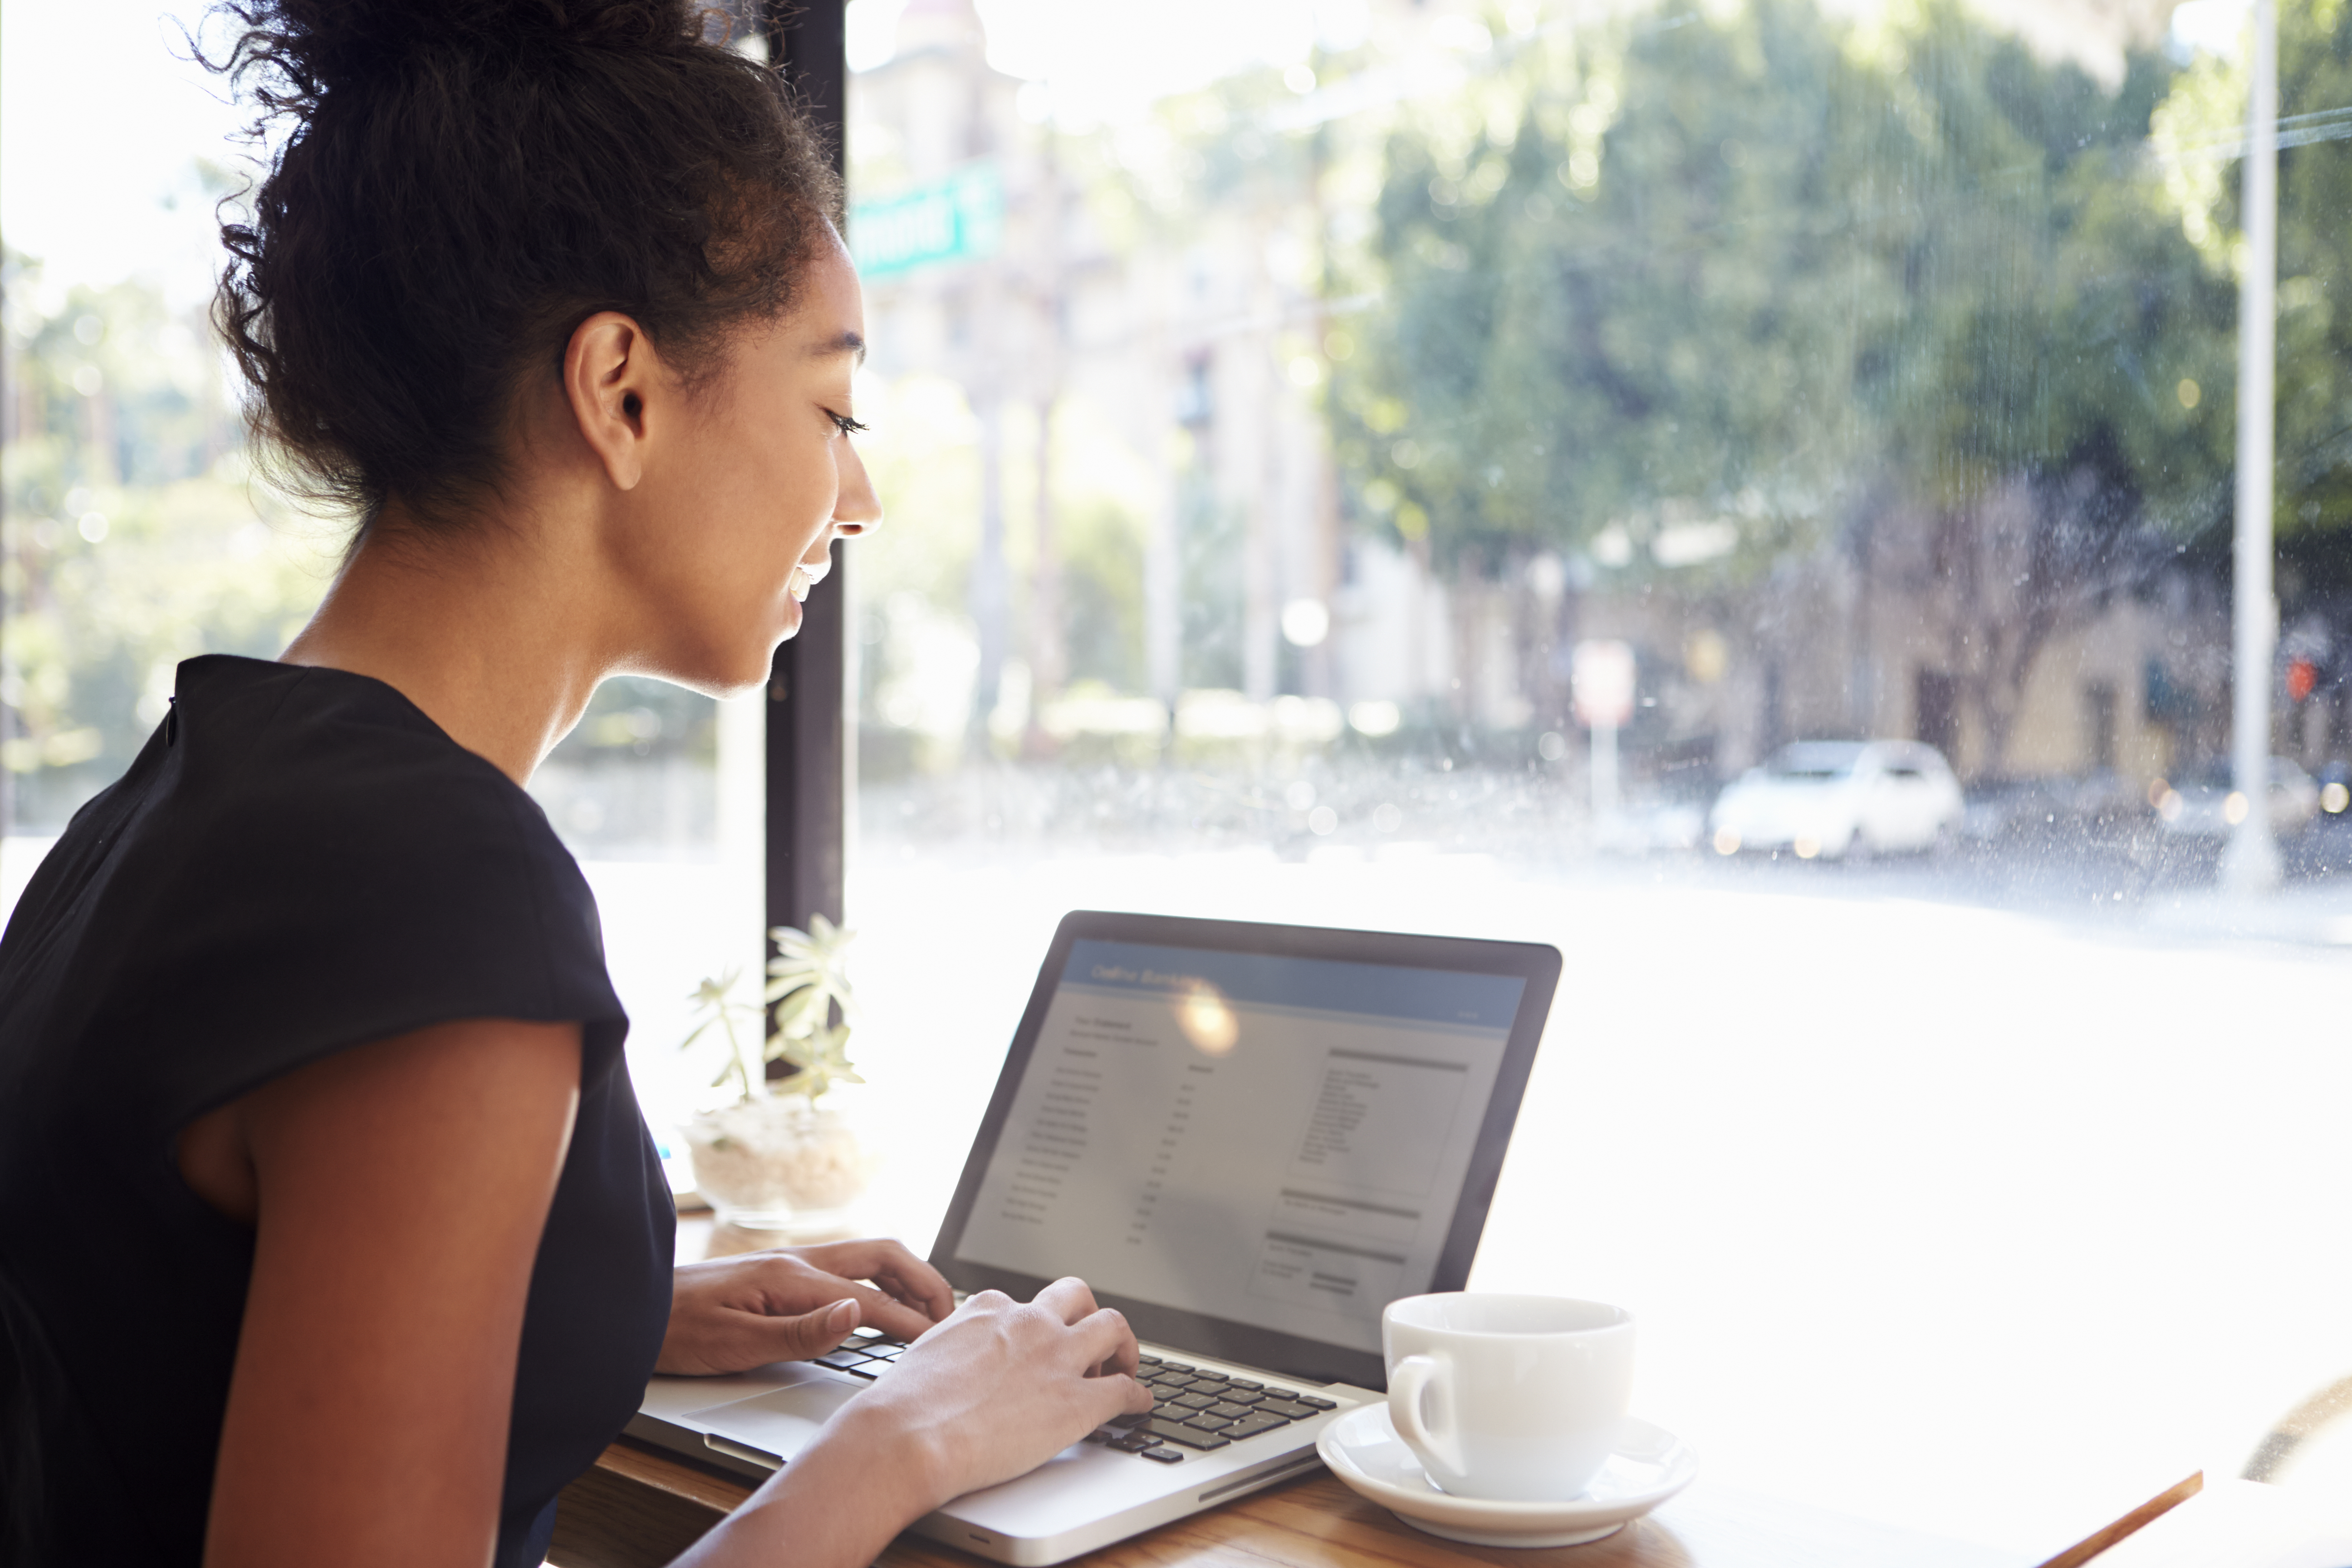 Woman working at a computer in a coffee shop